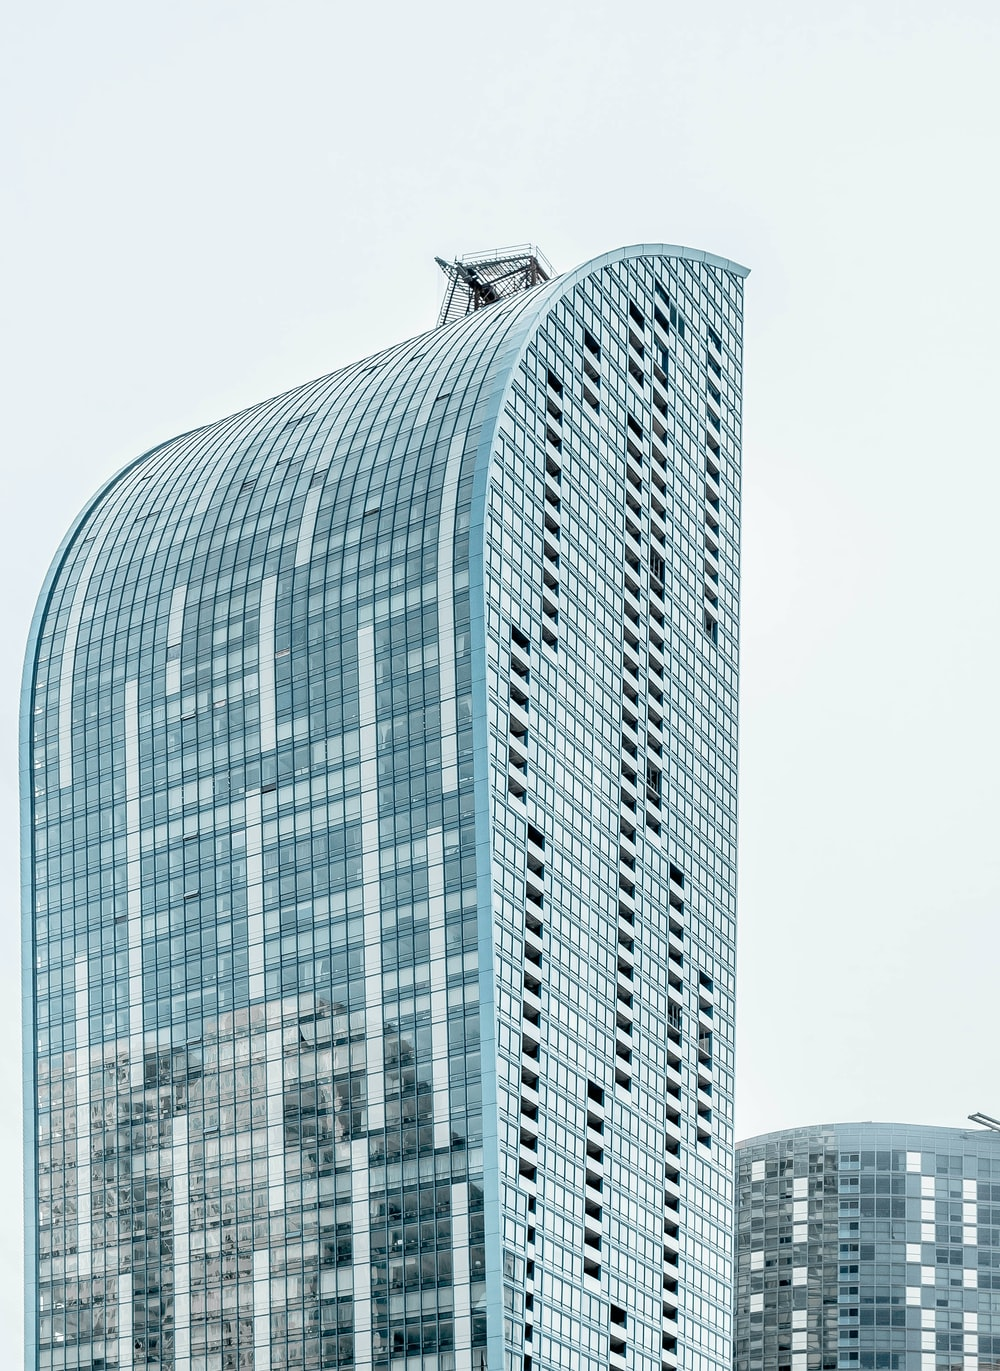 blue and clear glass building during daytime